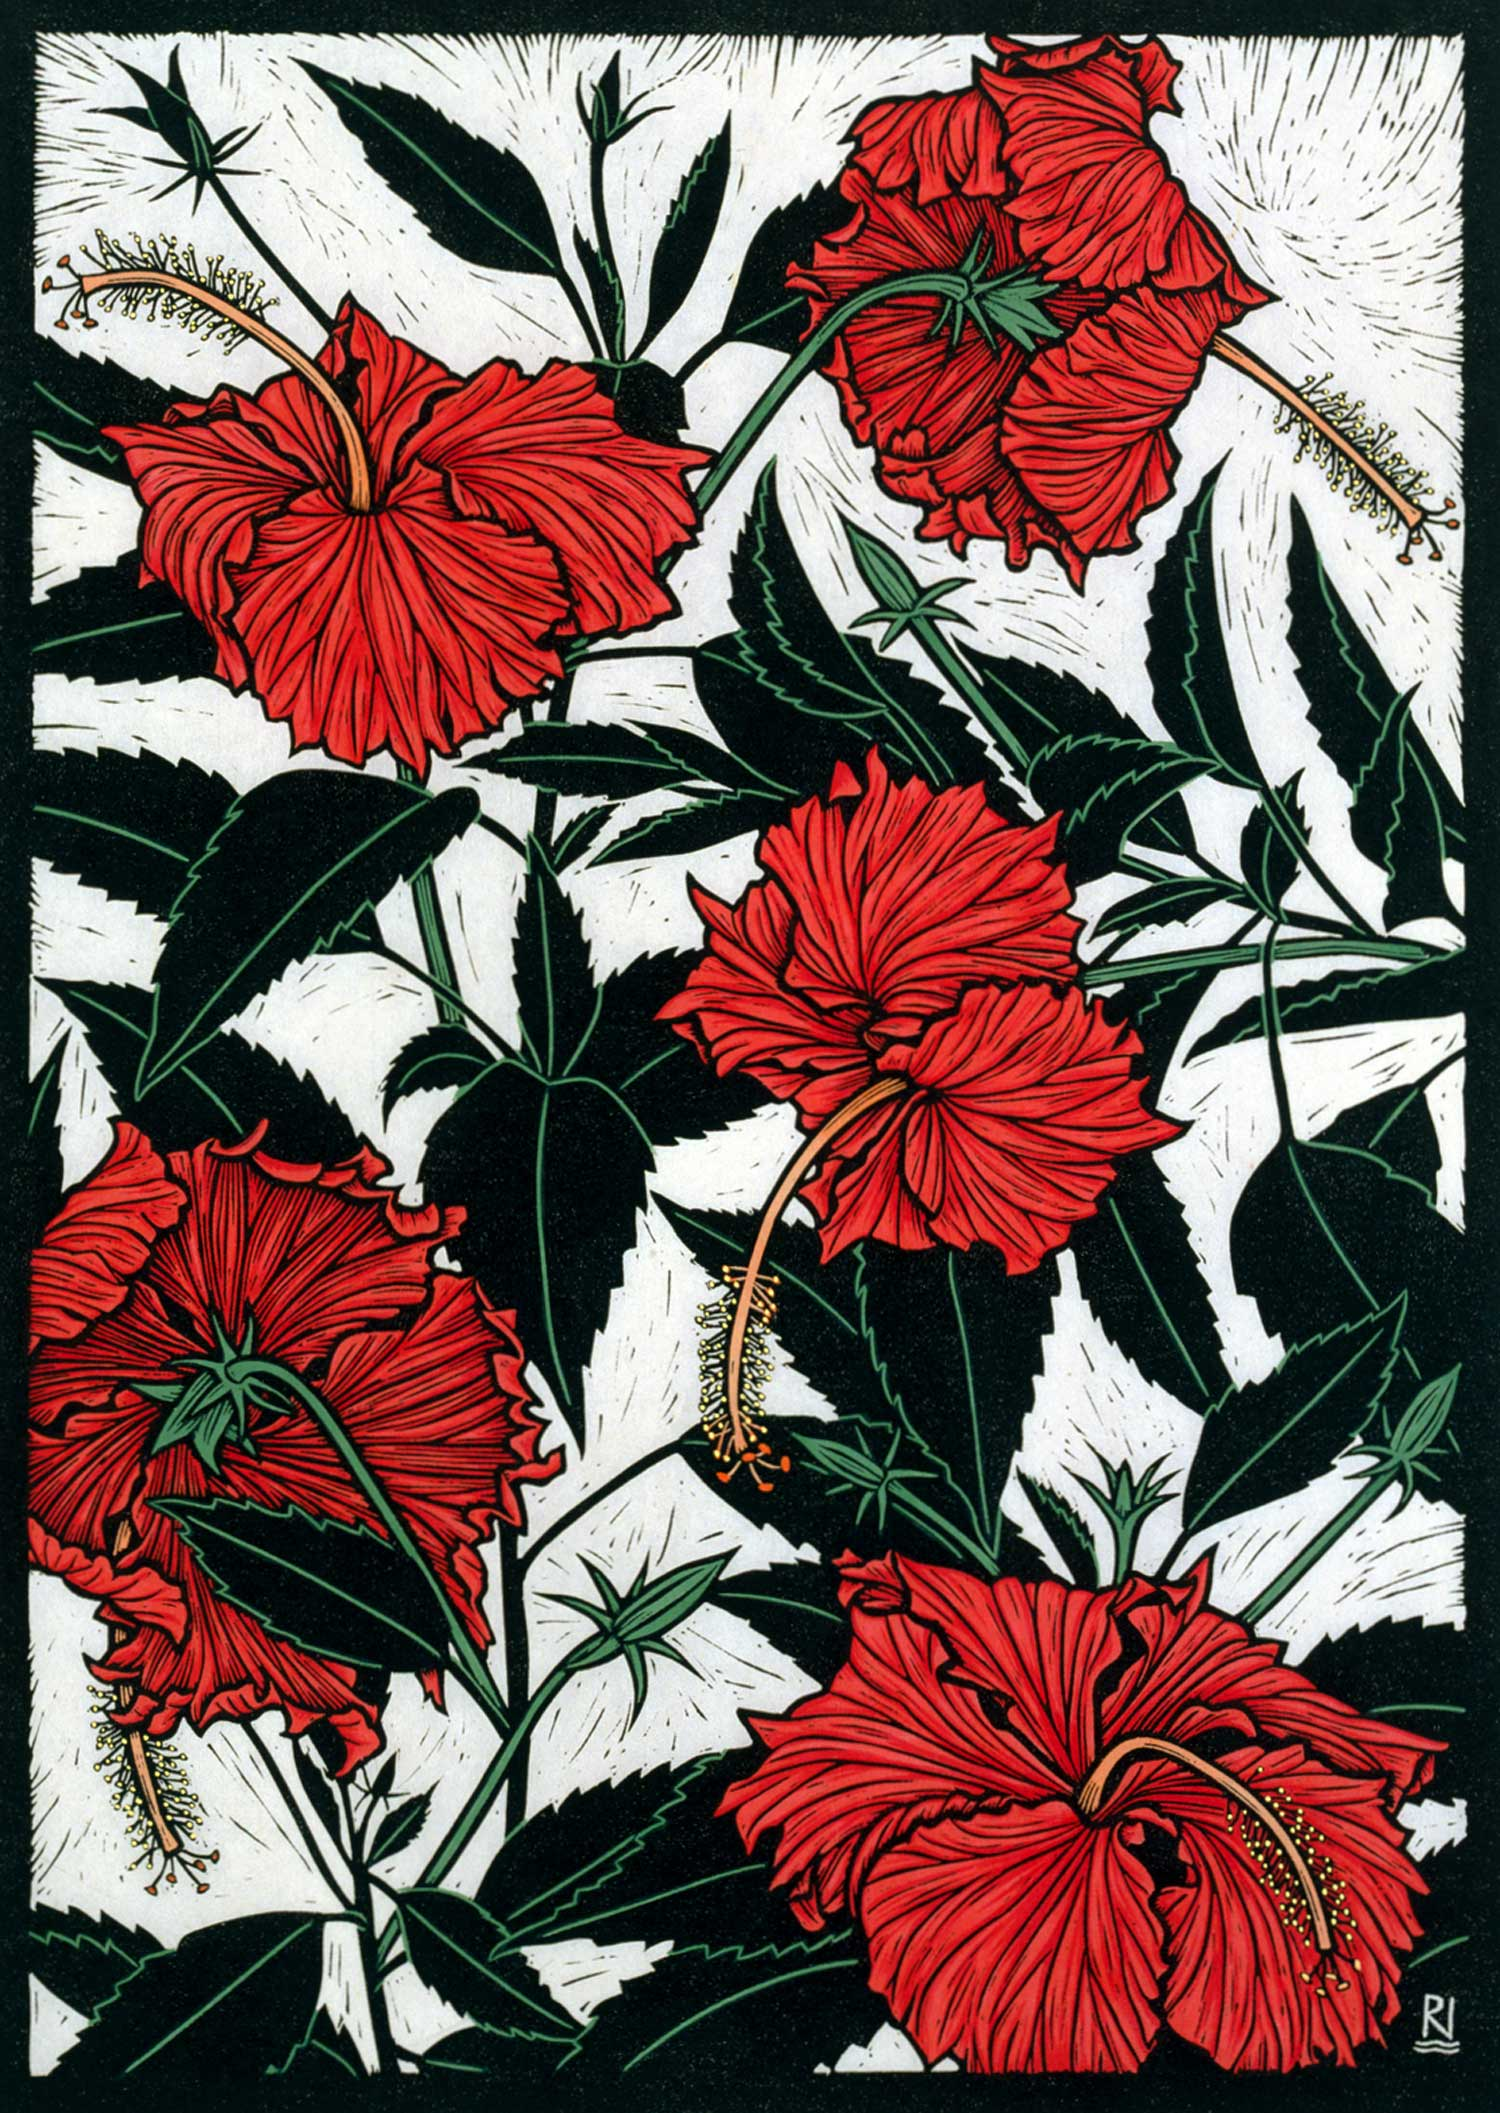 RED HIBISCUS  49 X 35 CM, EDITION OF 50  HAND-COLOURED LINOCUT ON HANDMADE JAPANESE PAPER  $1,100